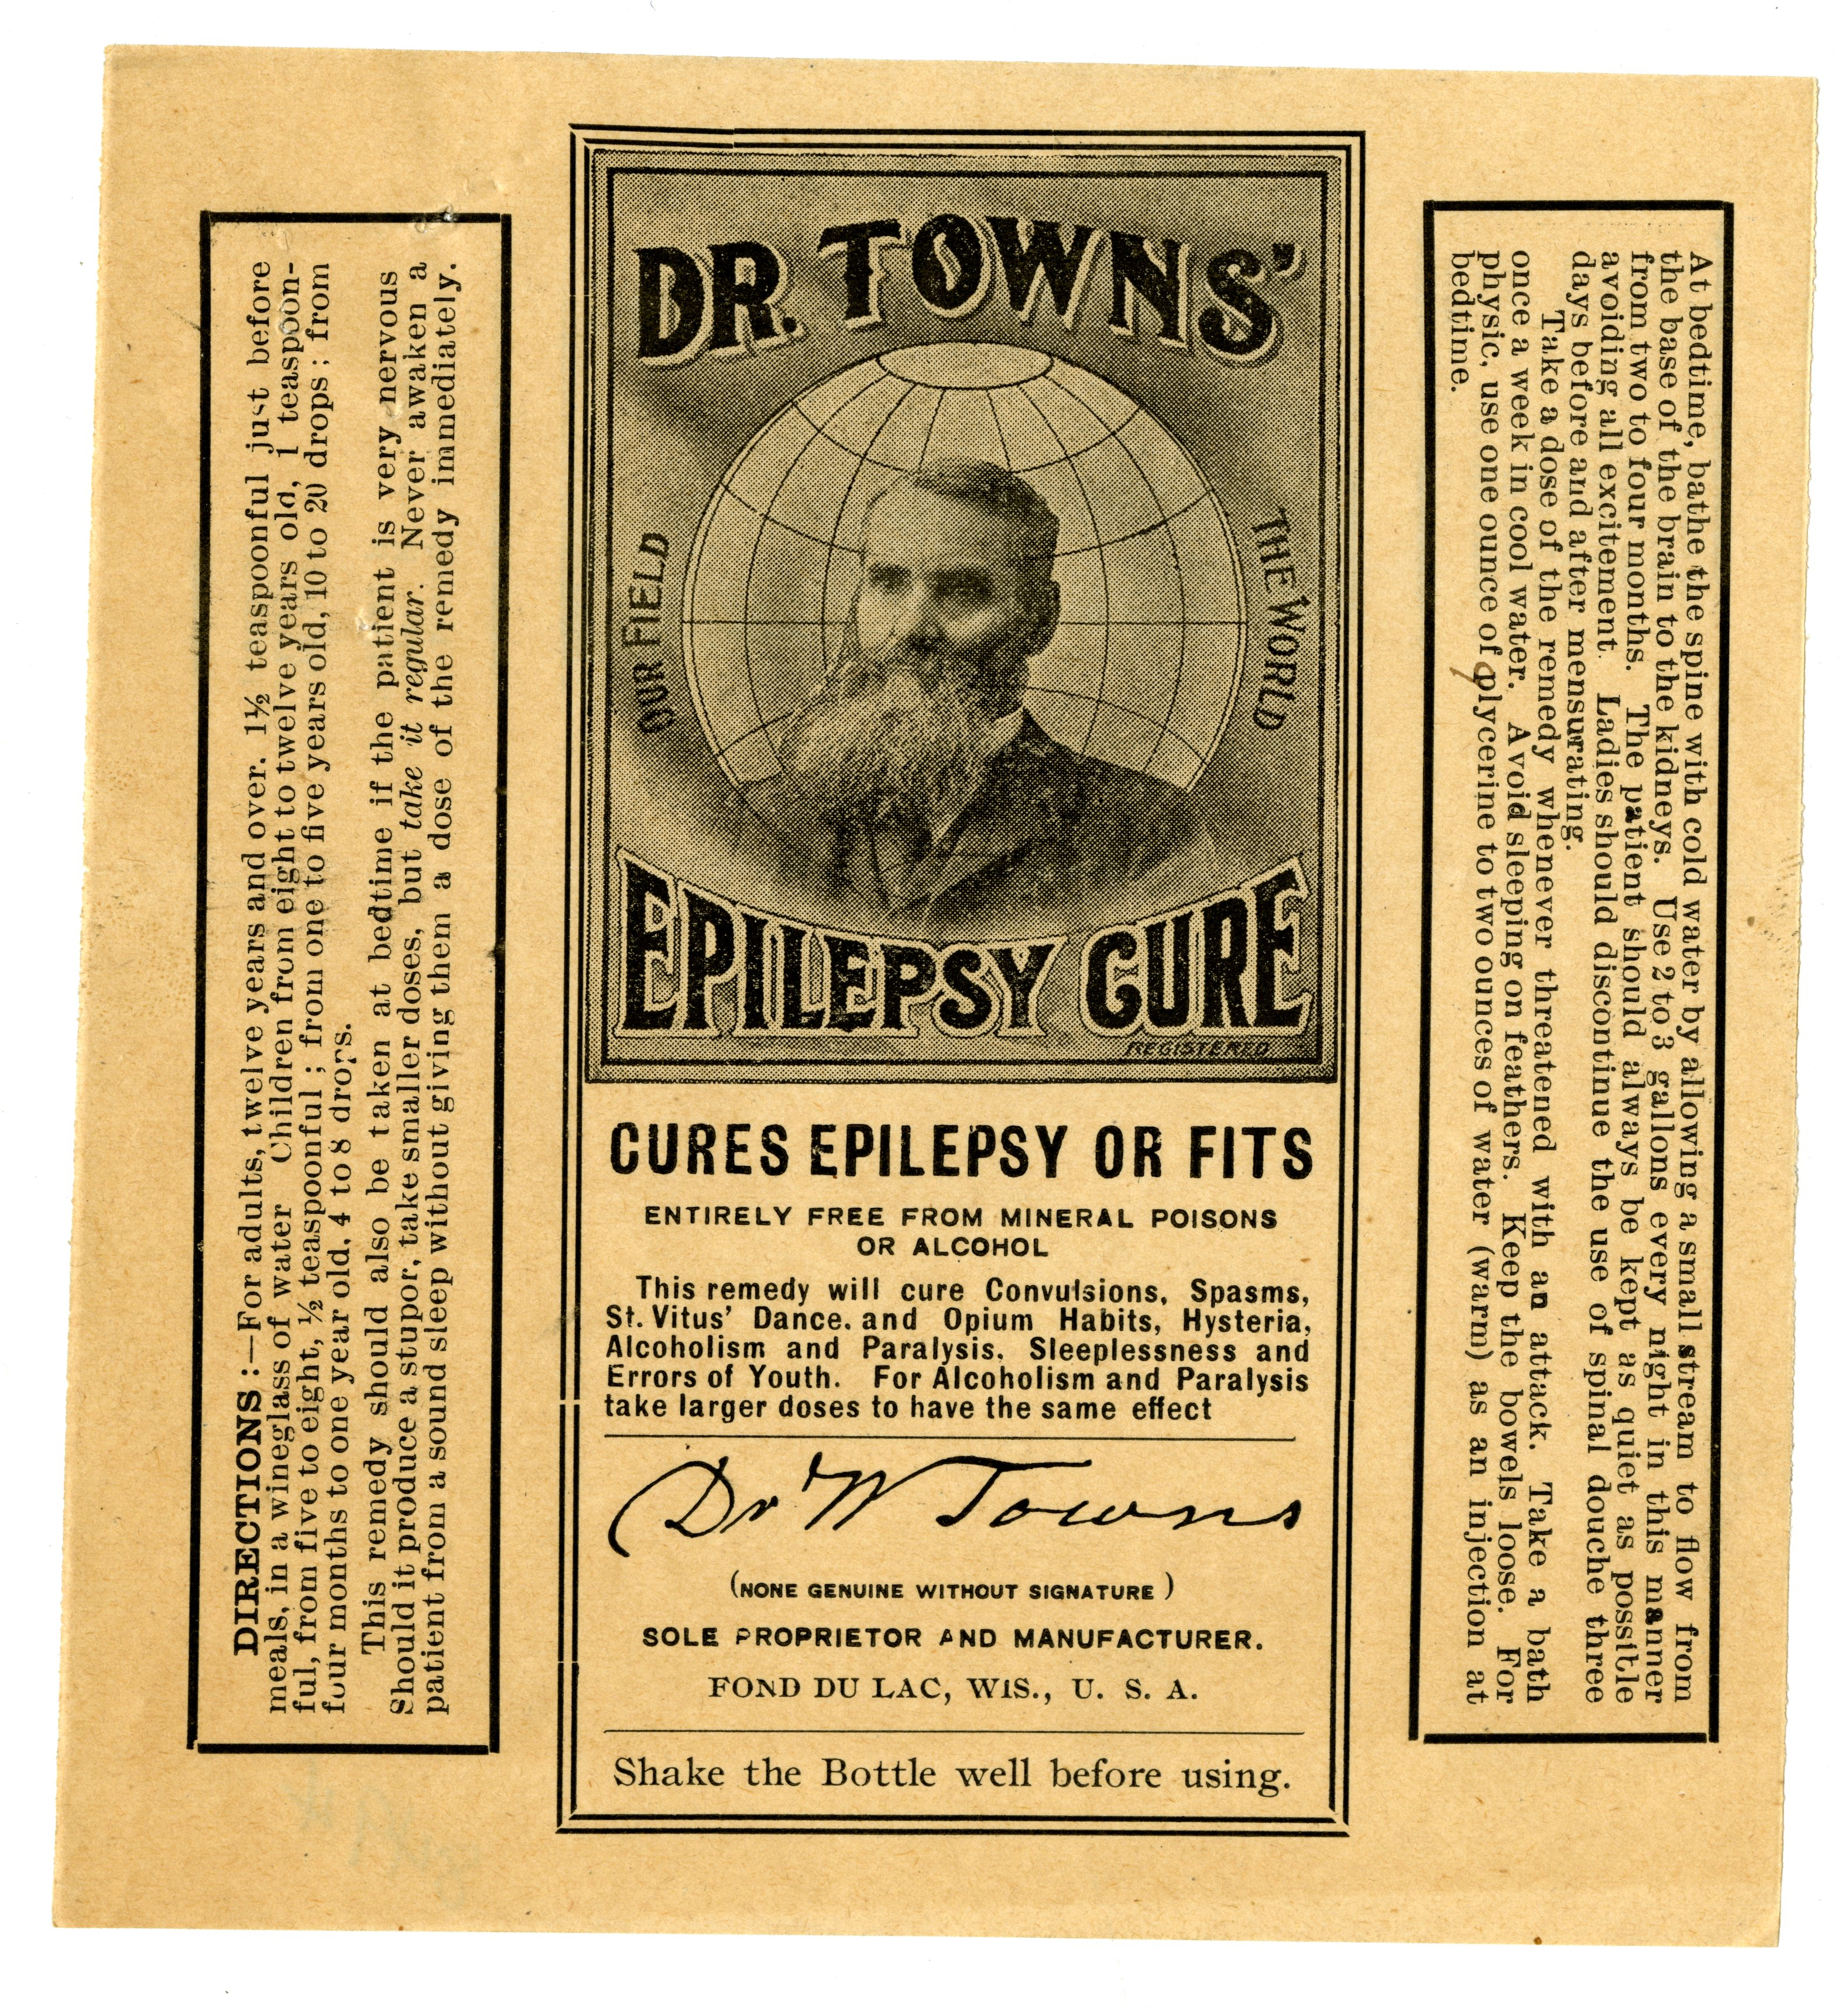 8494 - Dr. Towns' Epilepsy Cure - Dr. W. Towns